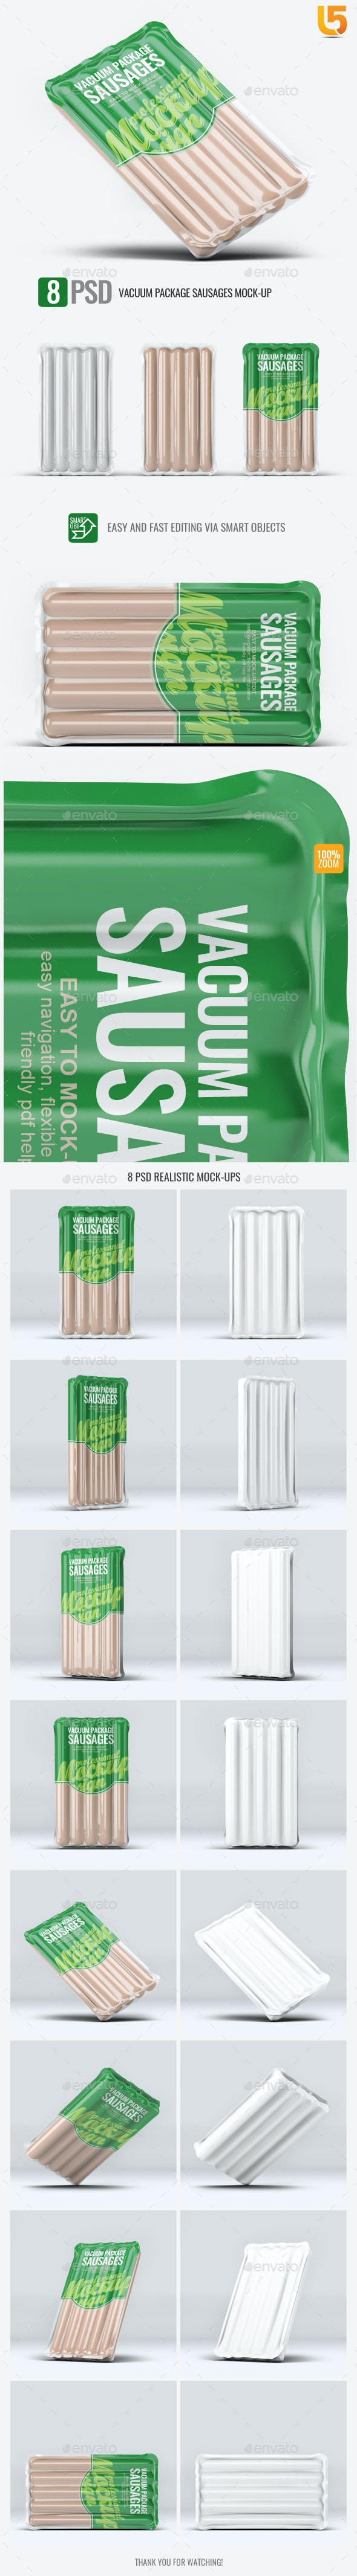 Vacuum Package Sausages Mock-Up - Food and Drink Packaging